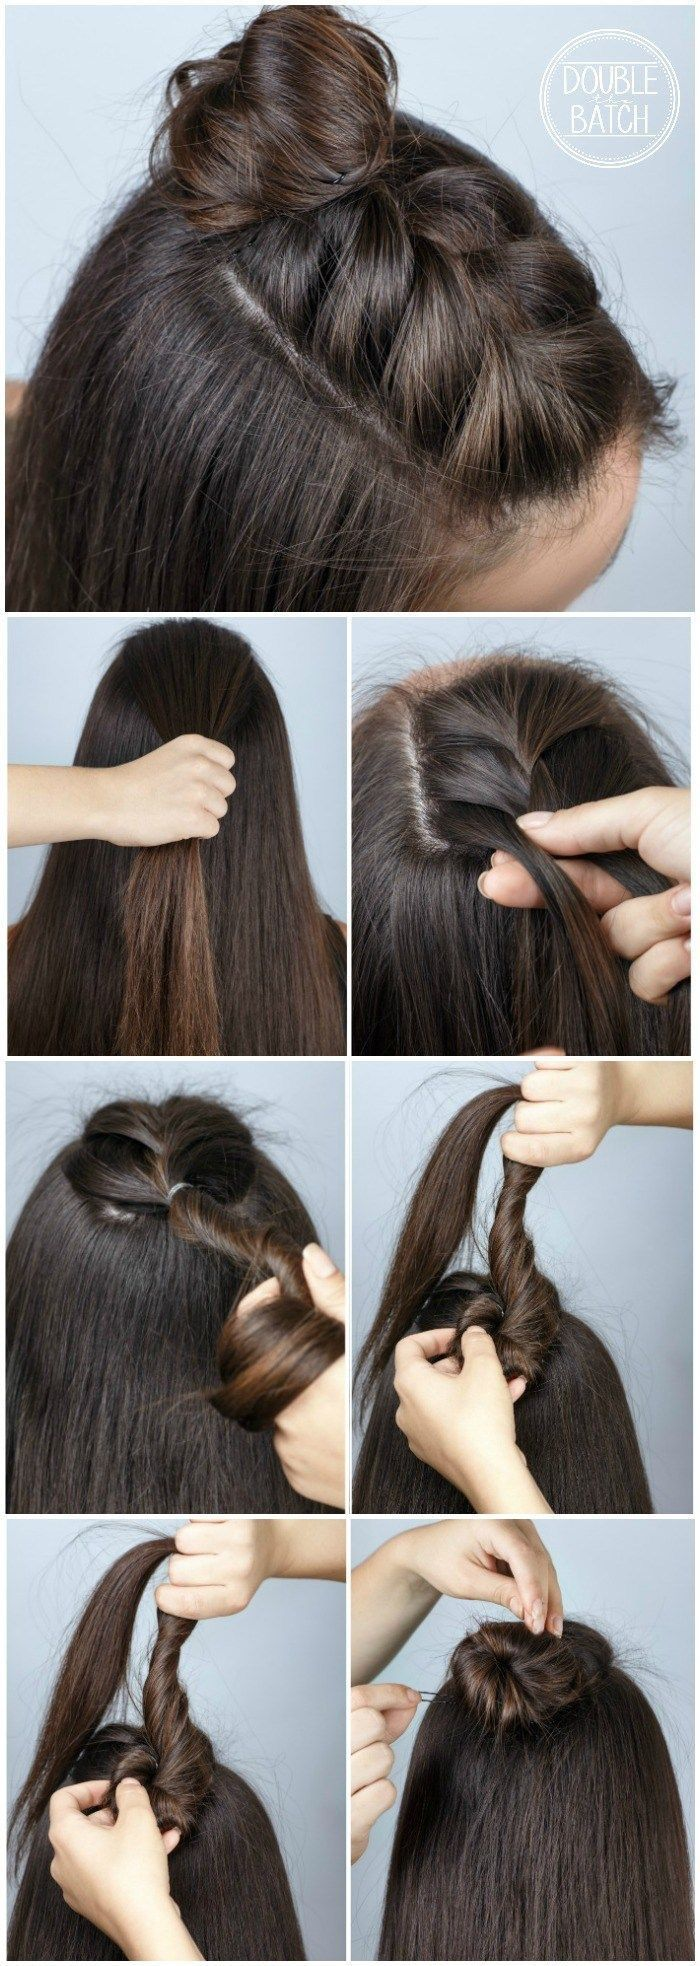 17 Best Hair Updo Ideas For Medium Length Hair Best Hairstyle Ideas Hair Styles Long Hair Styles Pinterest Hair